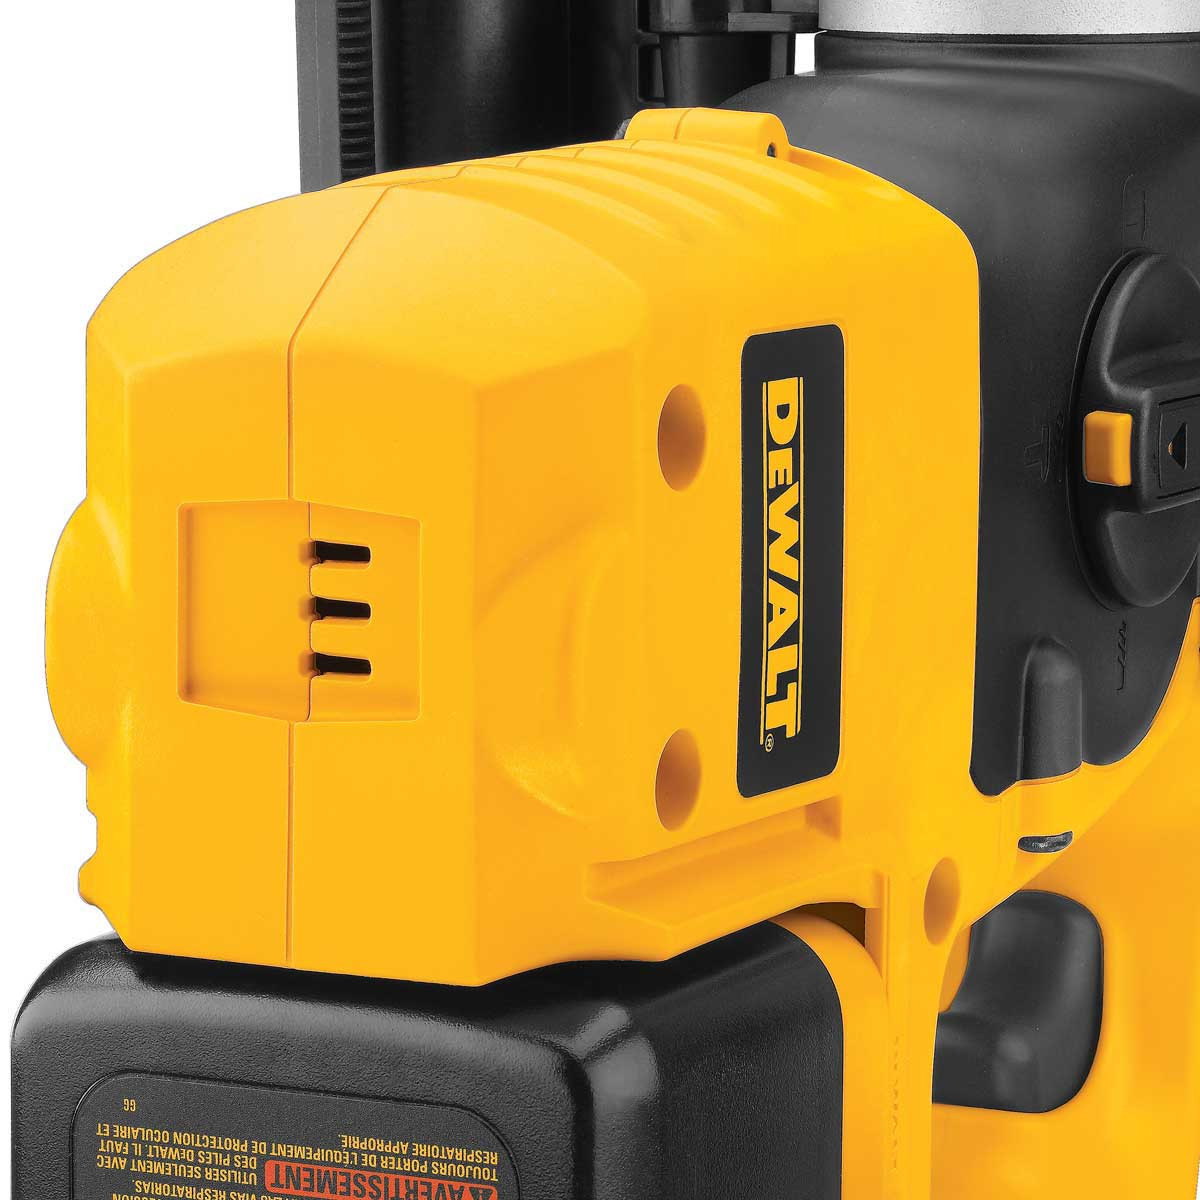 Dewalt DC212KA Heavy-Duty SDS Plus